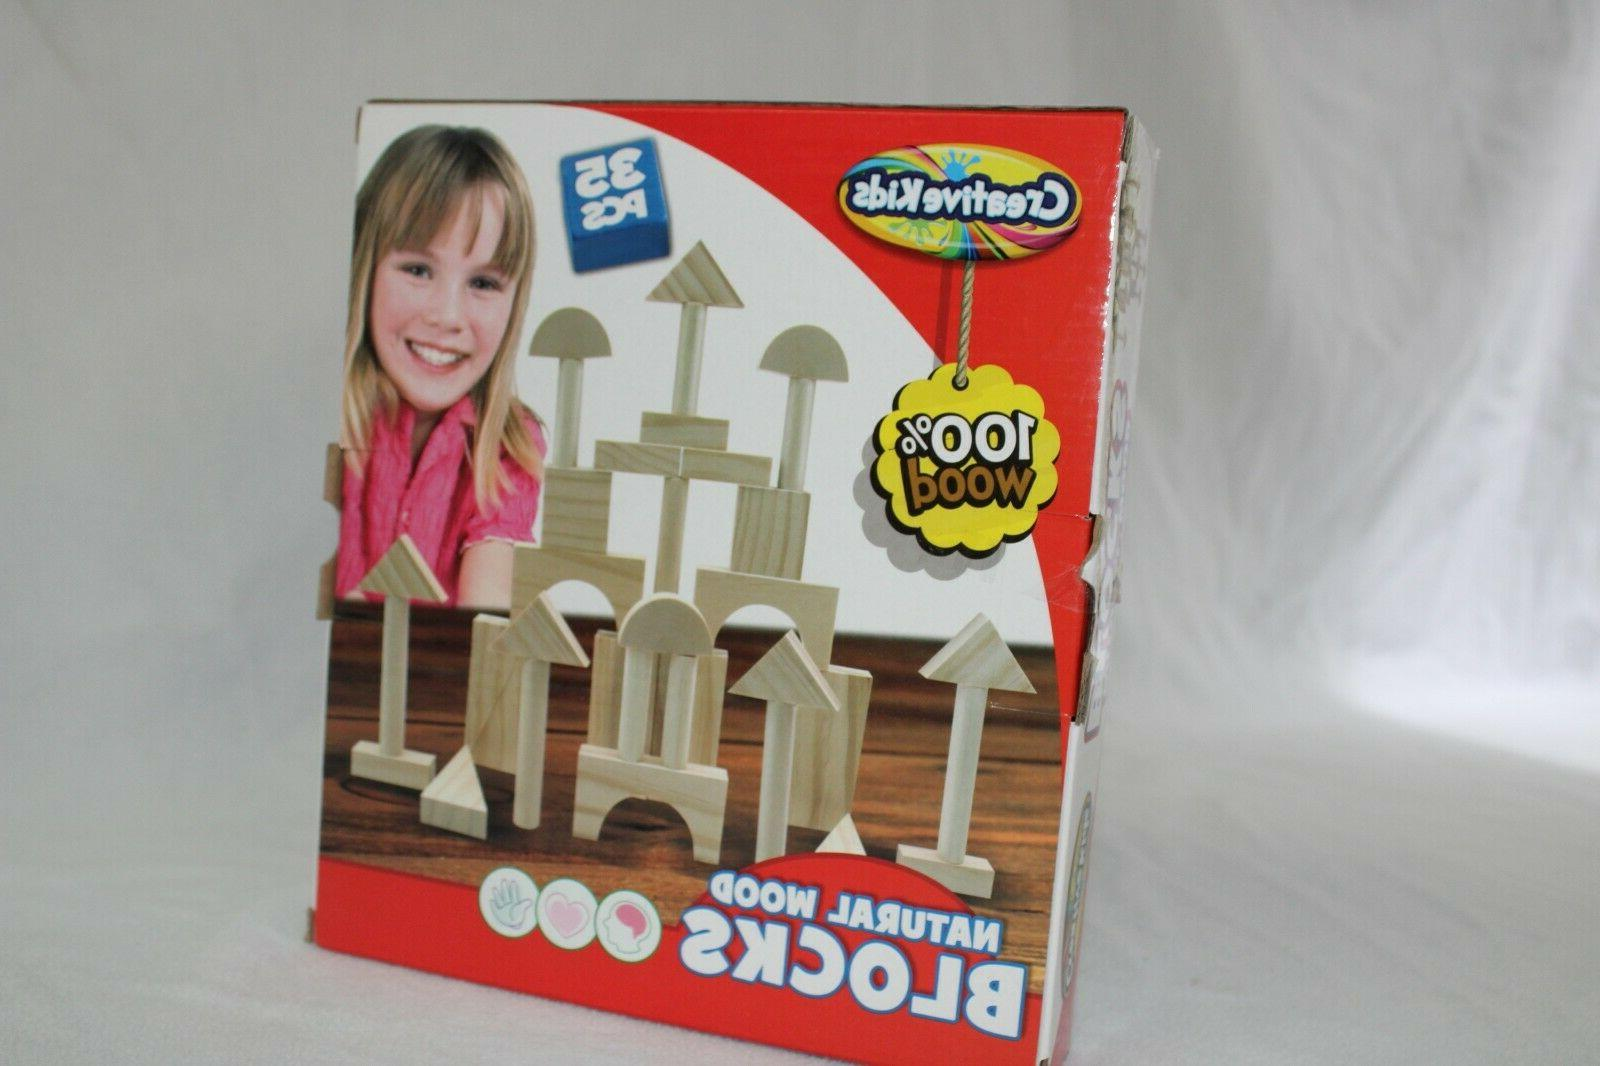 3 plus natural wood blocks includes one